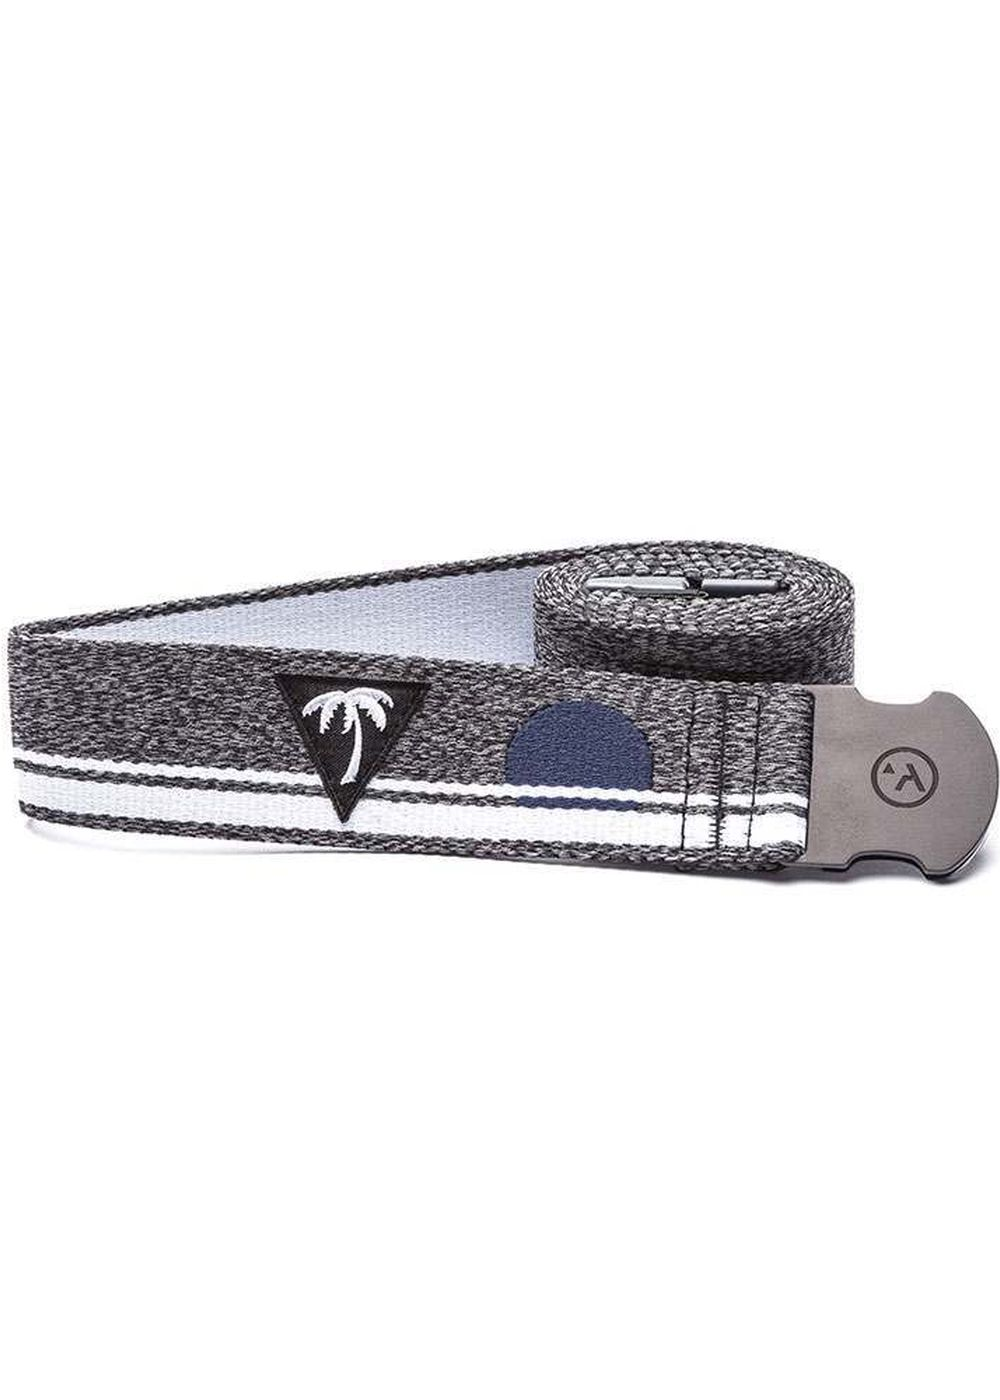 arcade belts the offshore black/white